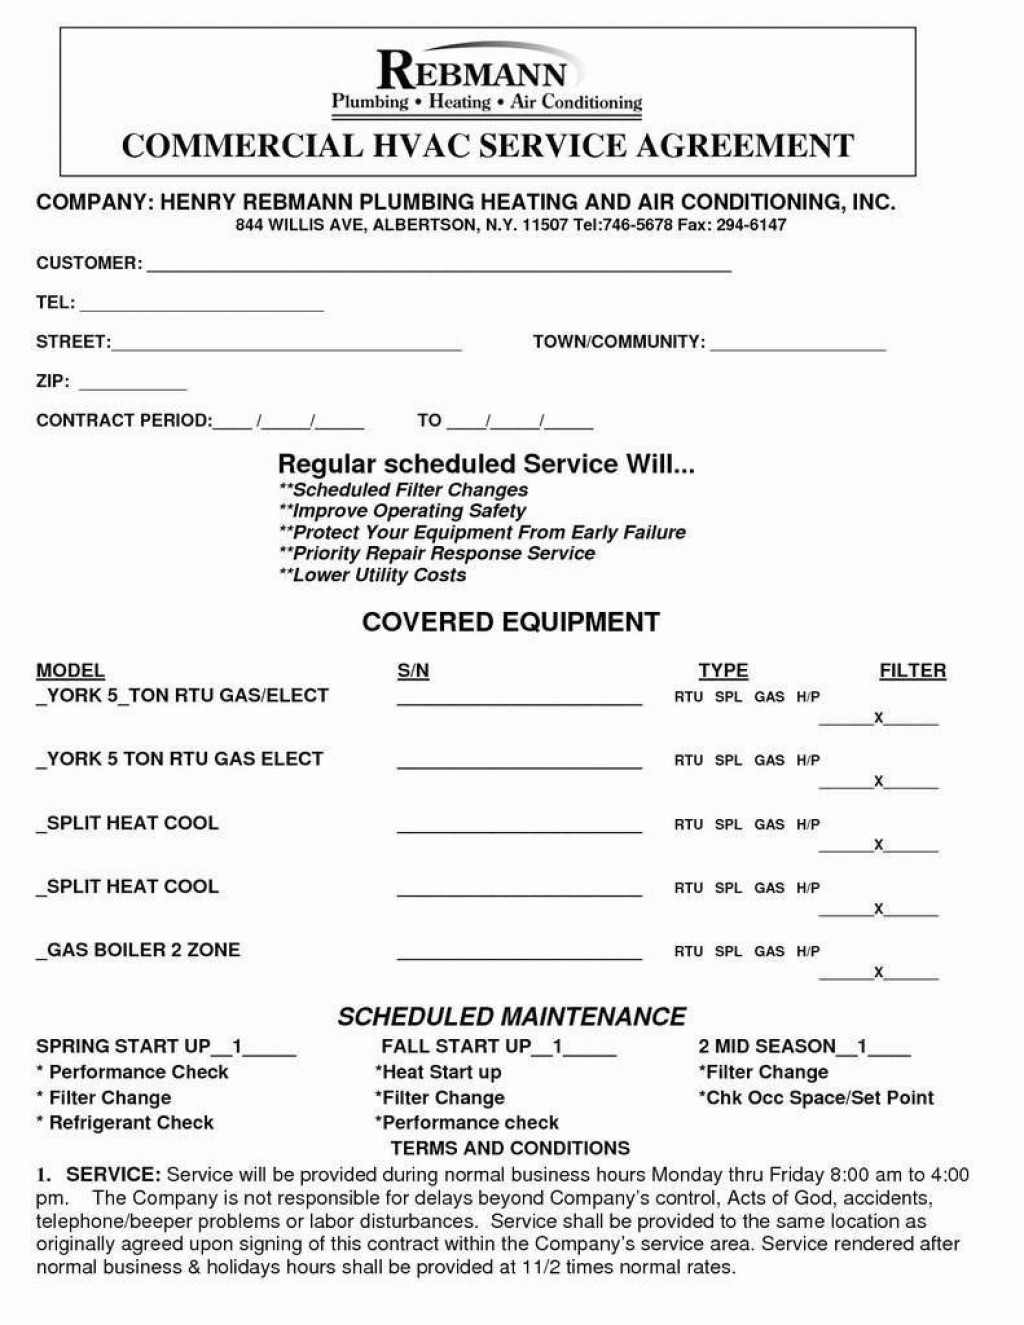 007 Dreaded Commercial Hvac Service Agreement Template Picture  Maintenance ContractLarge